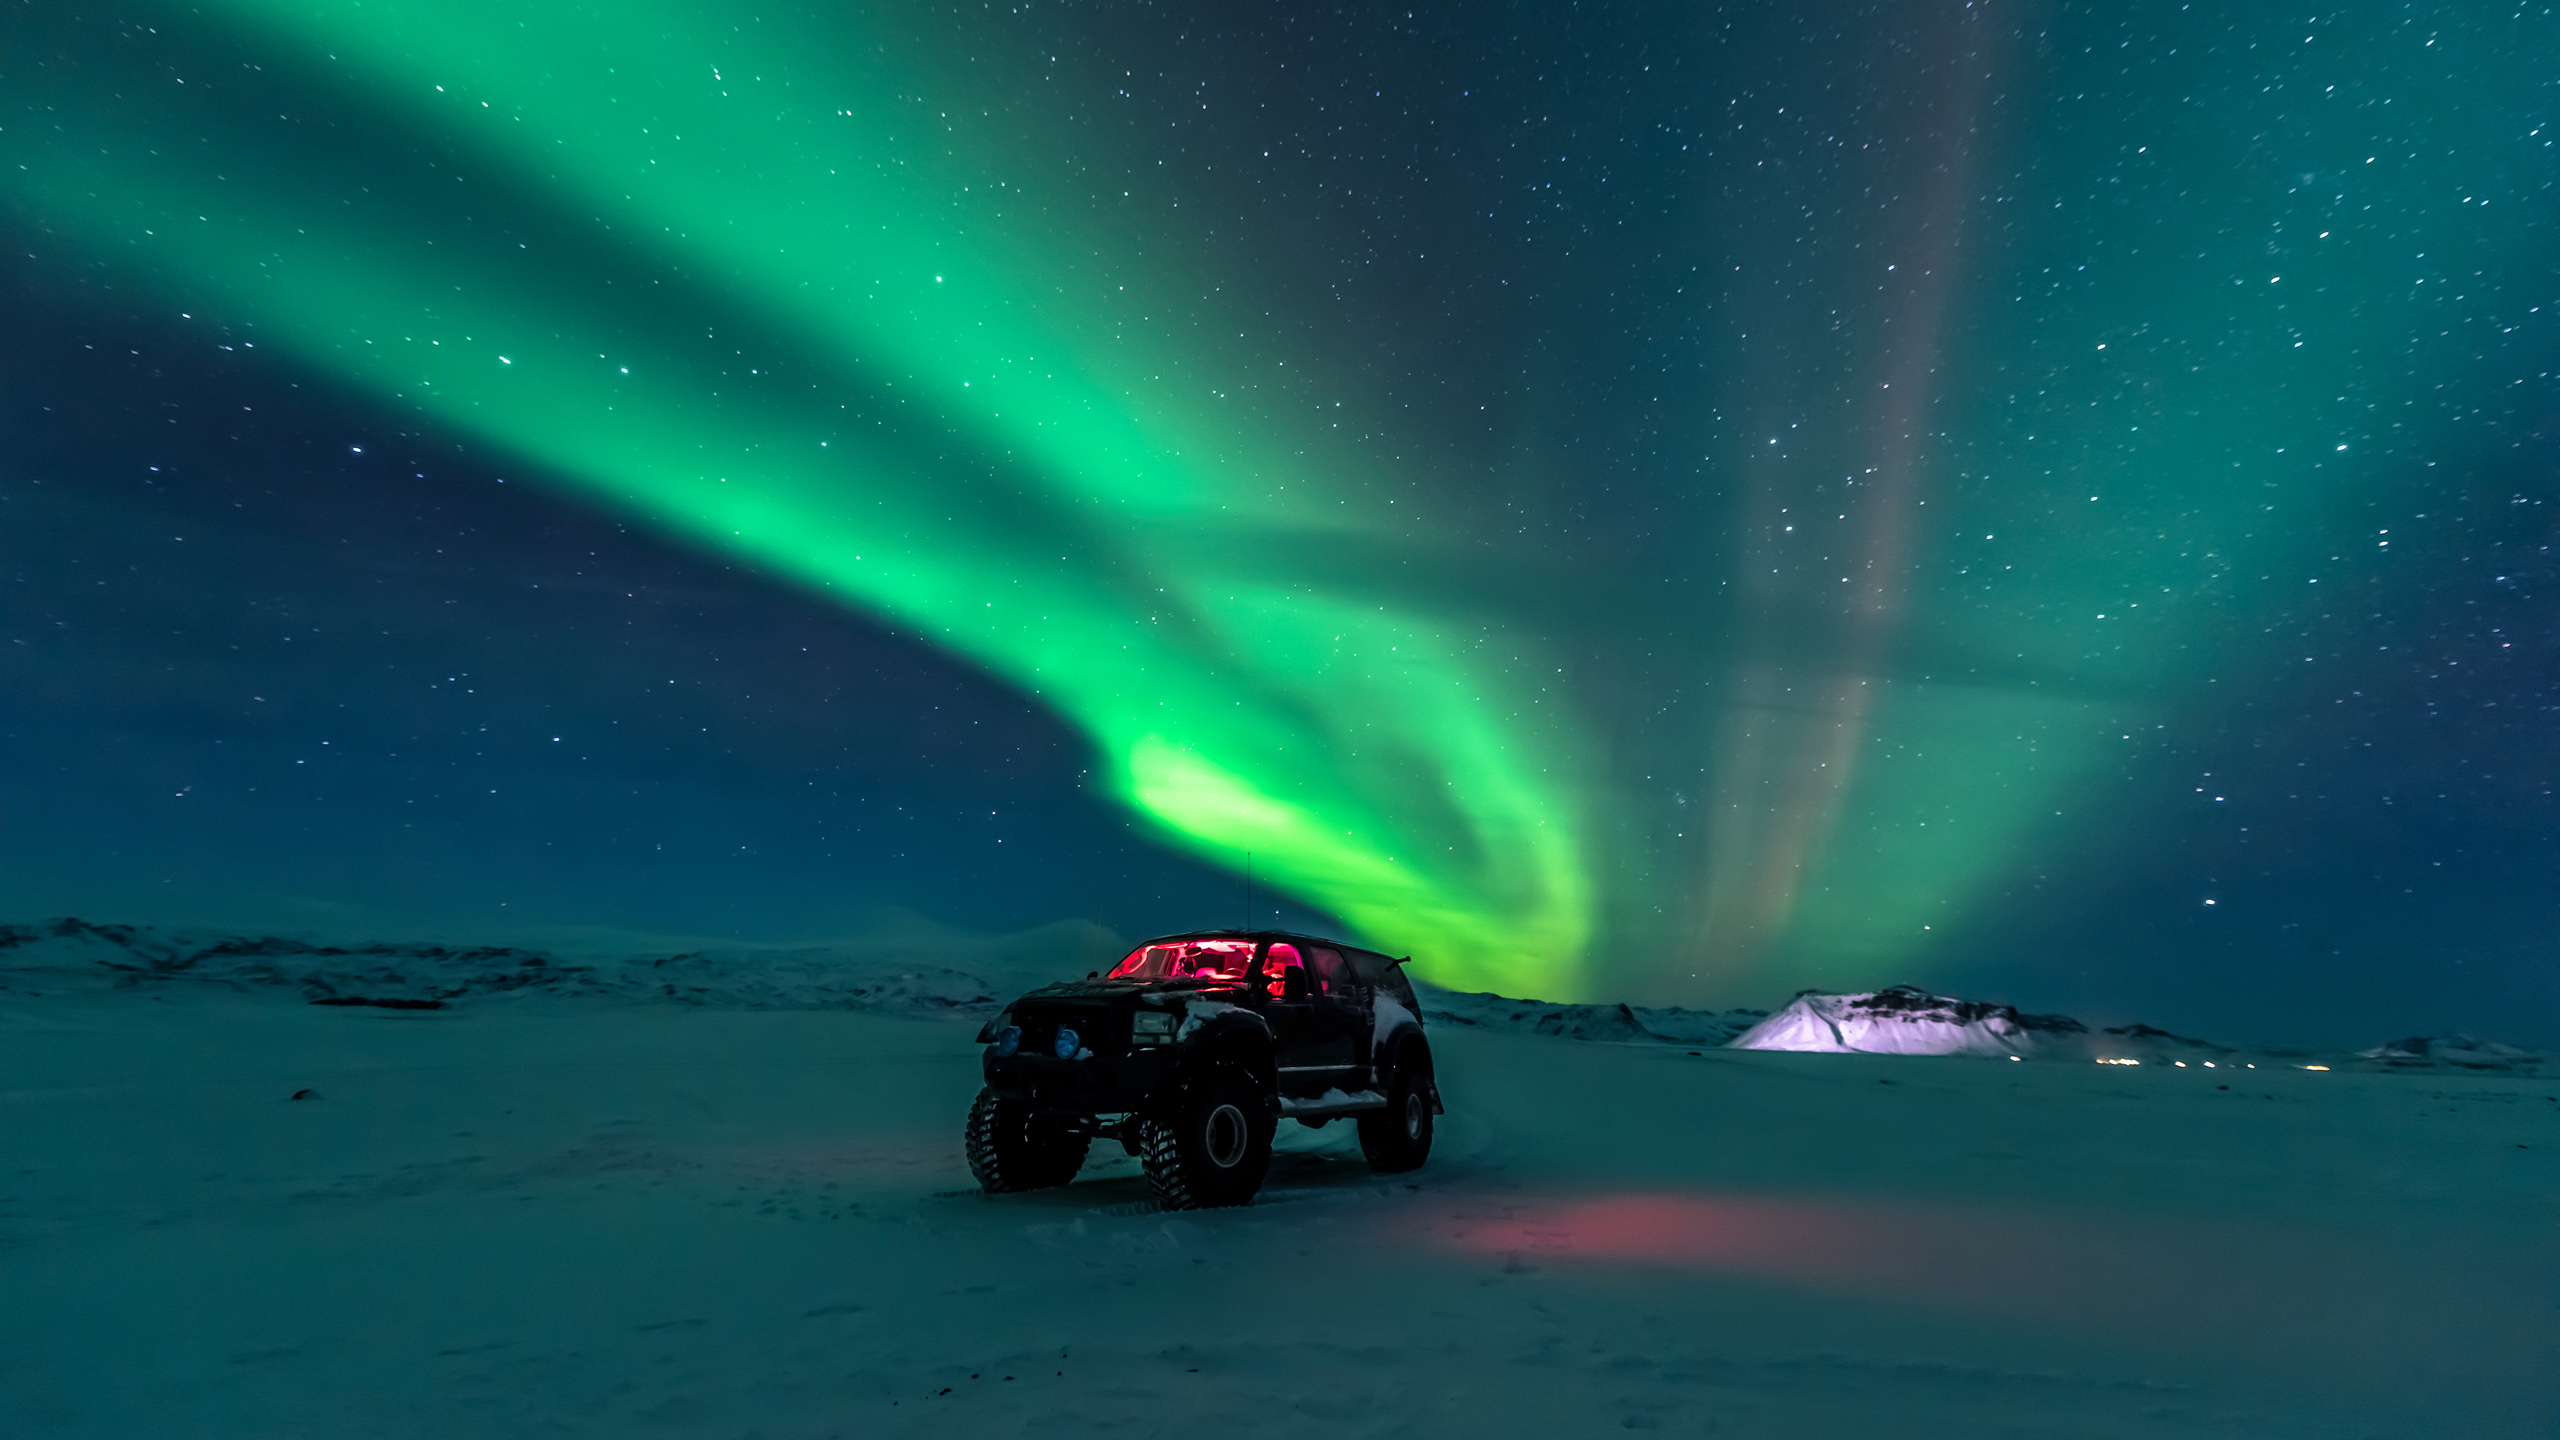 red jeep at night with Aurora Borealis in sky